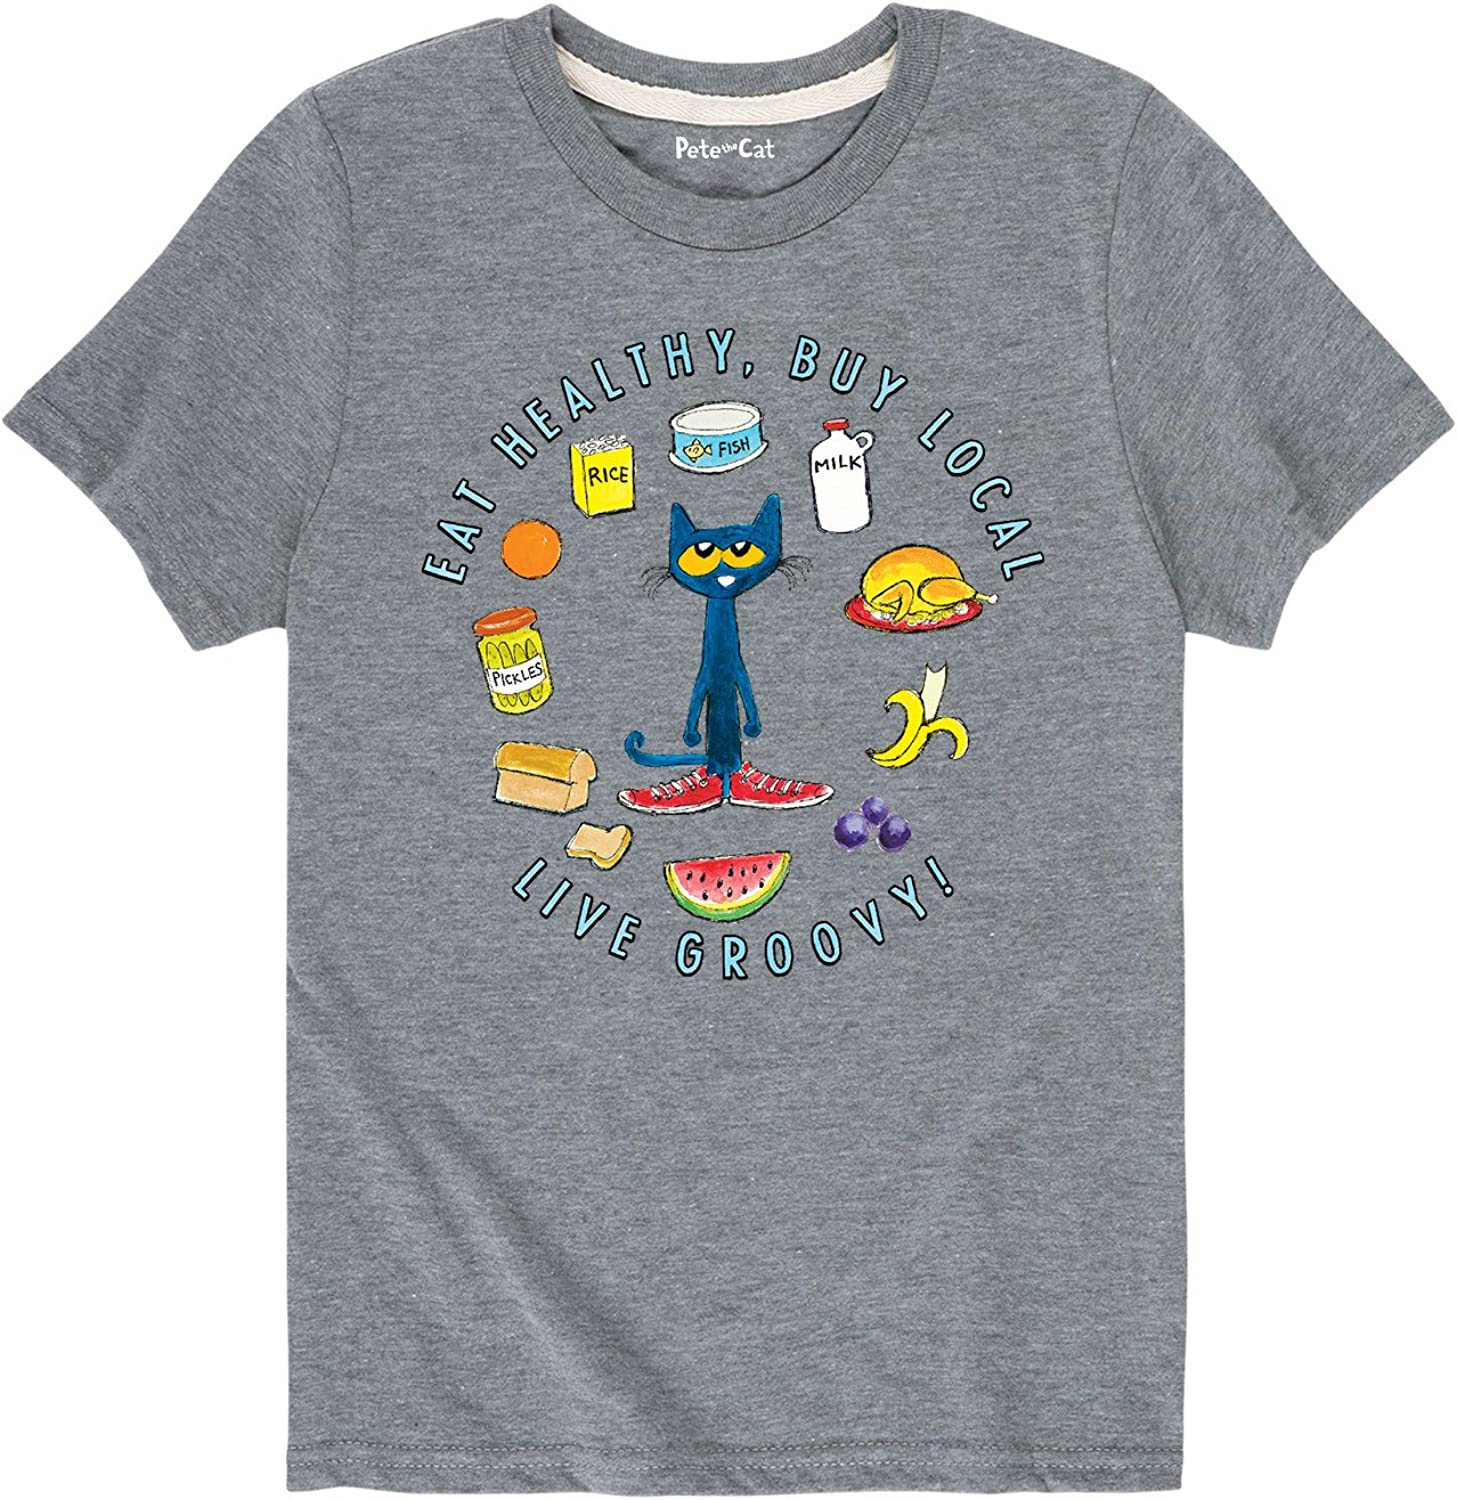 Pete the Cat Food Groups - Toddler Short Sleeve T-Shirt